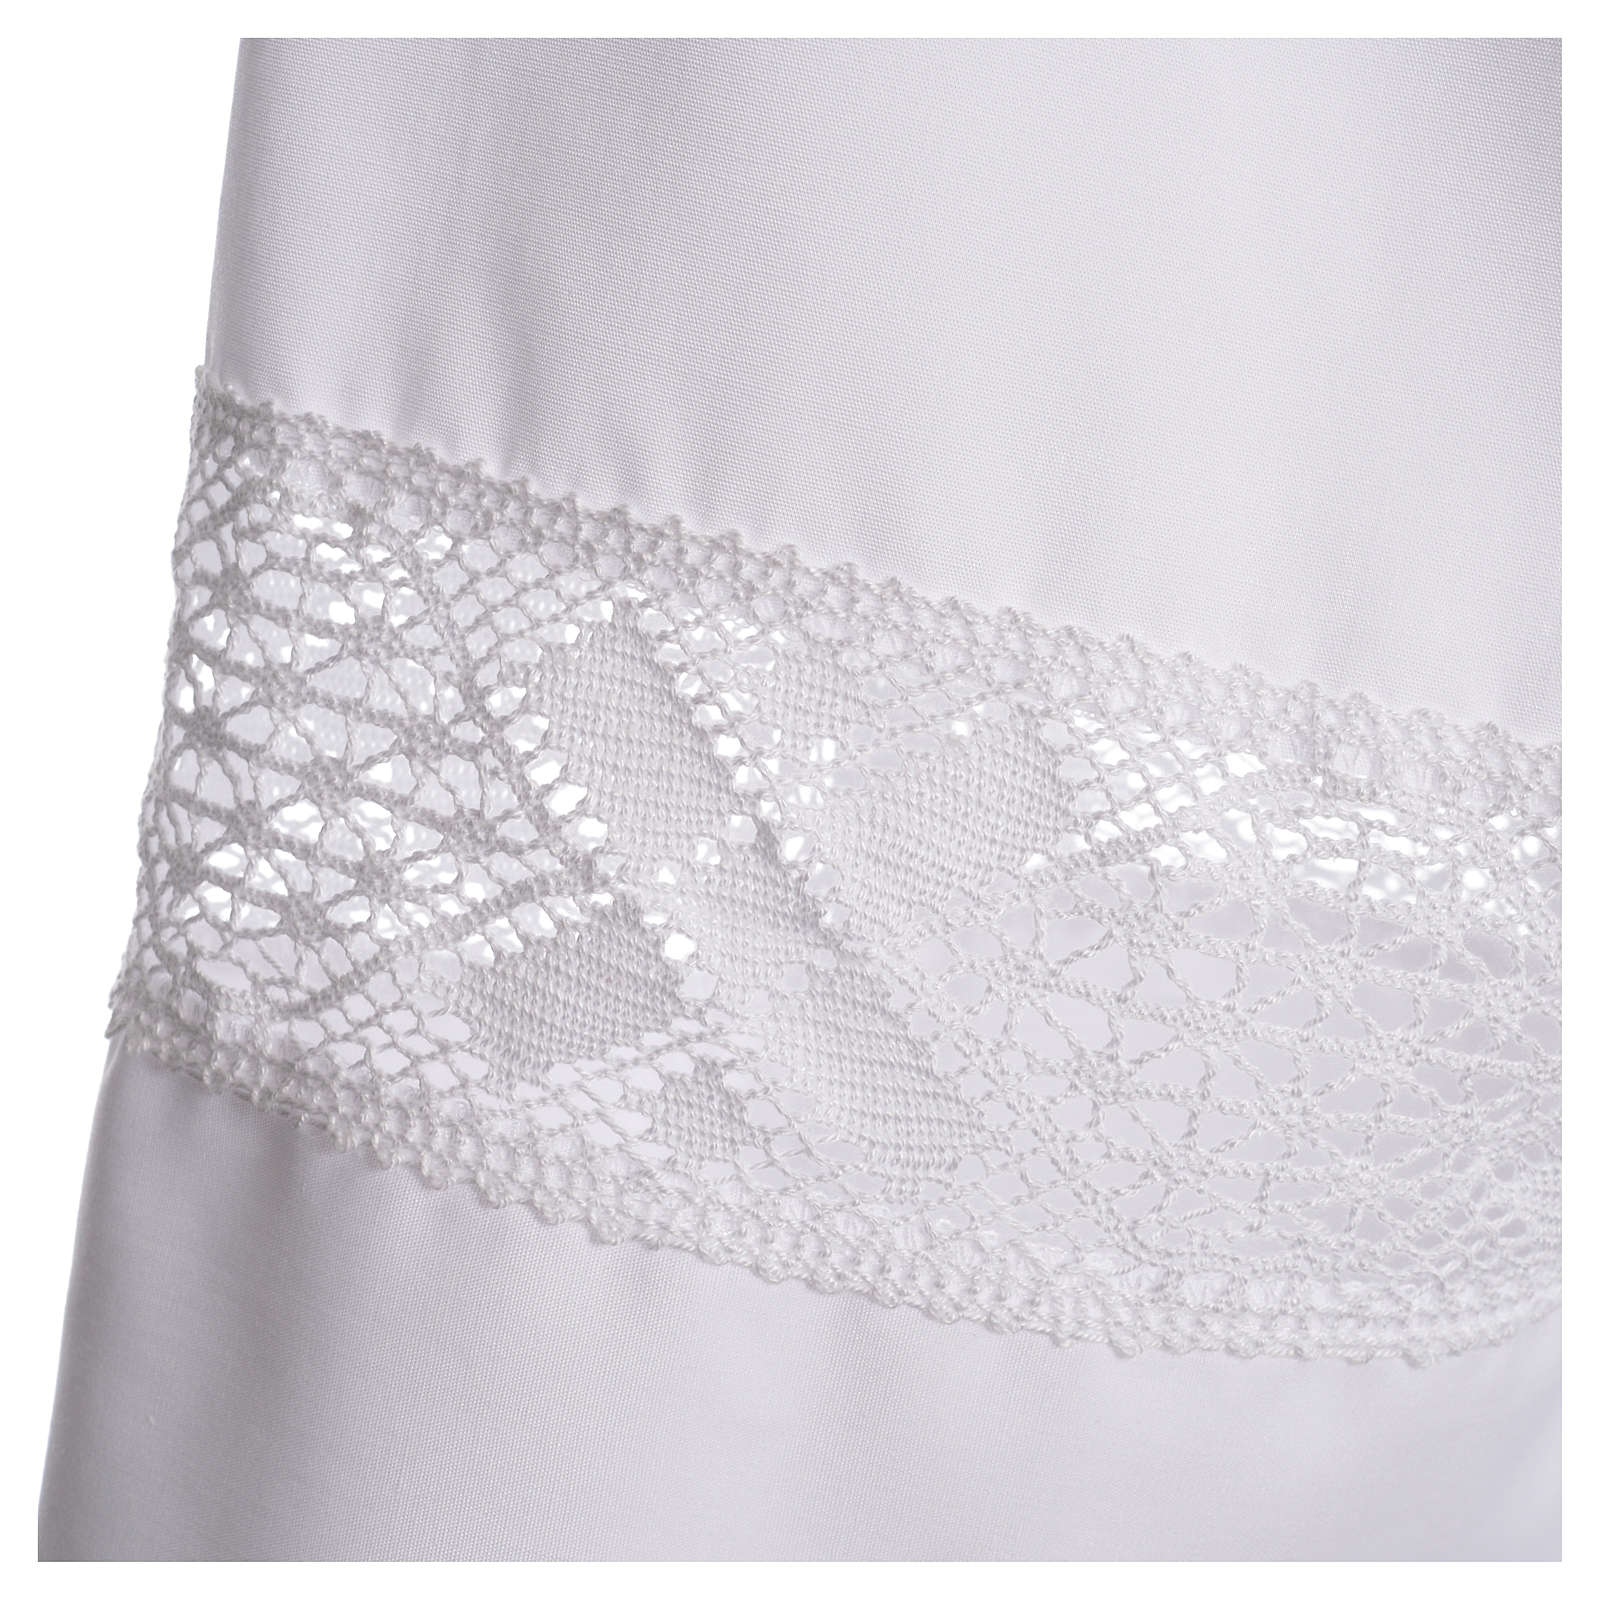 Alb with lace in 65% polyester 35% cotton, white 4